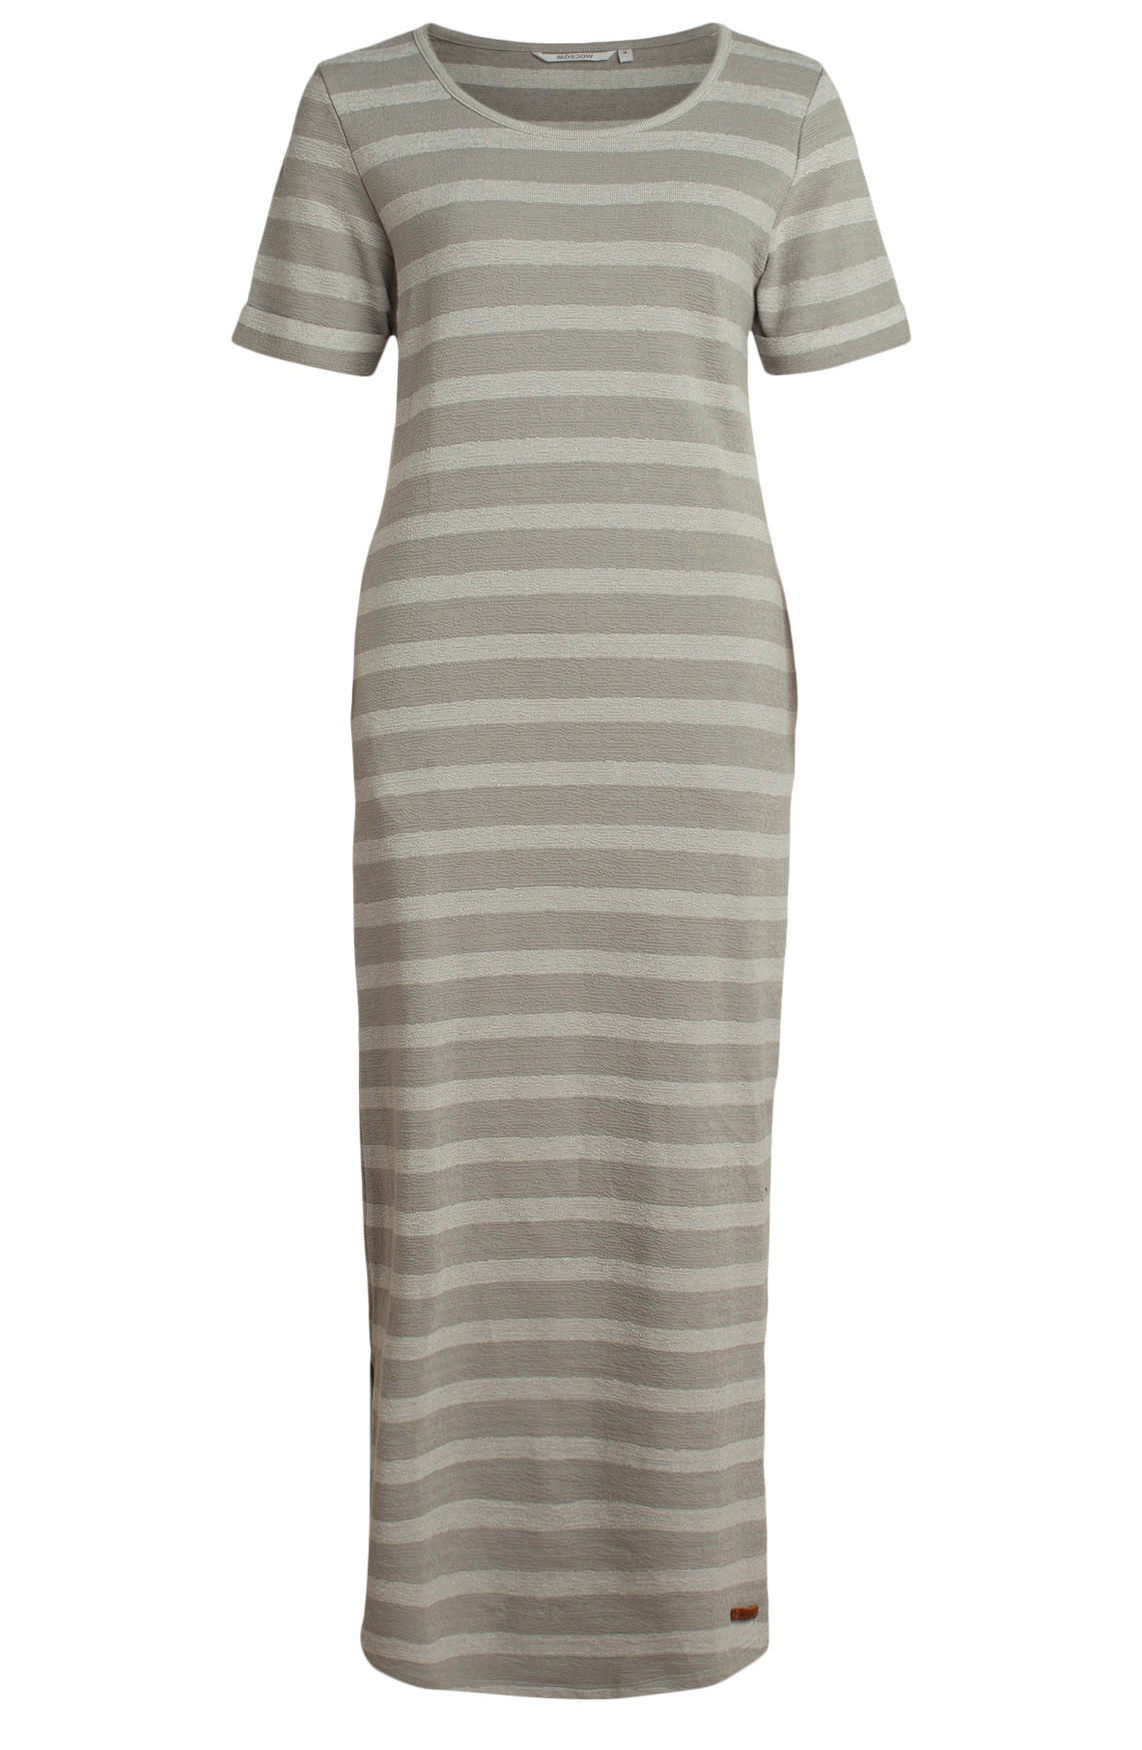 moscow Long Dress SP20-14.04  Chalk grey-1